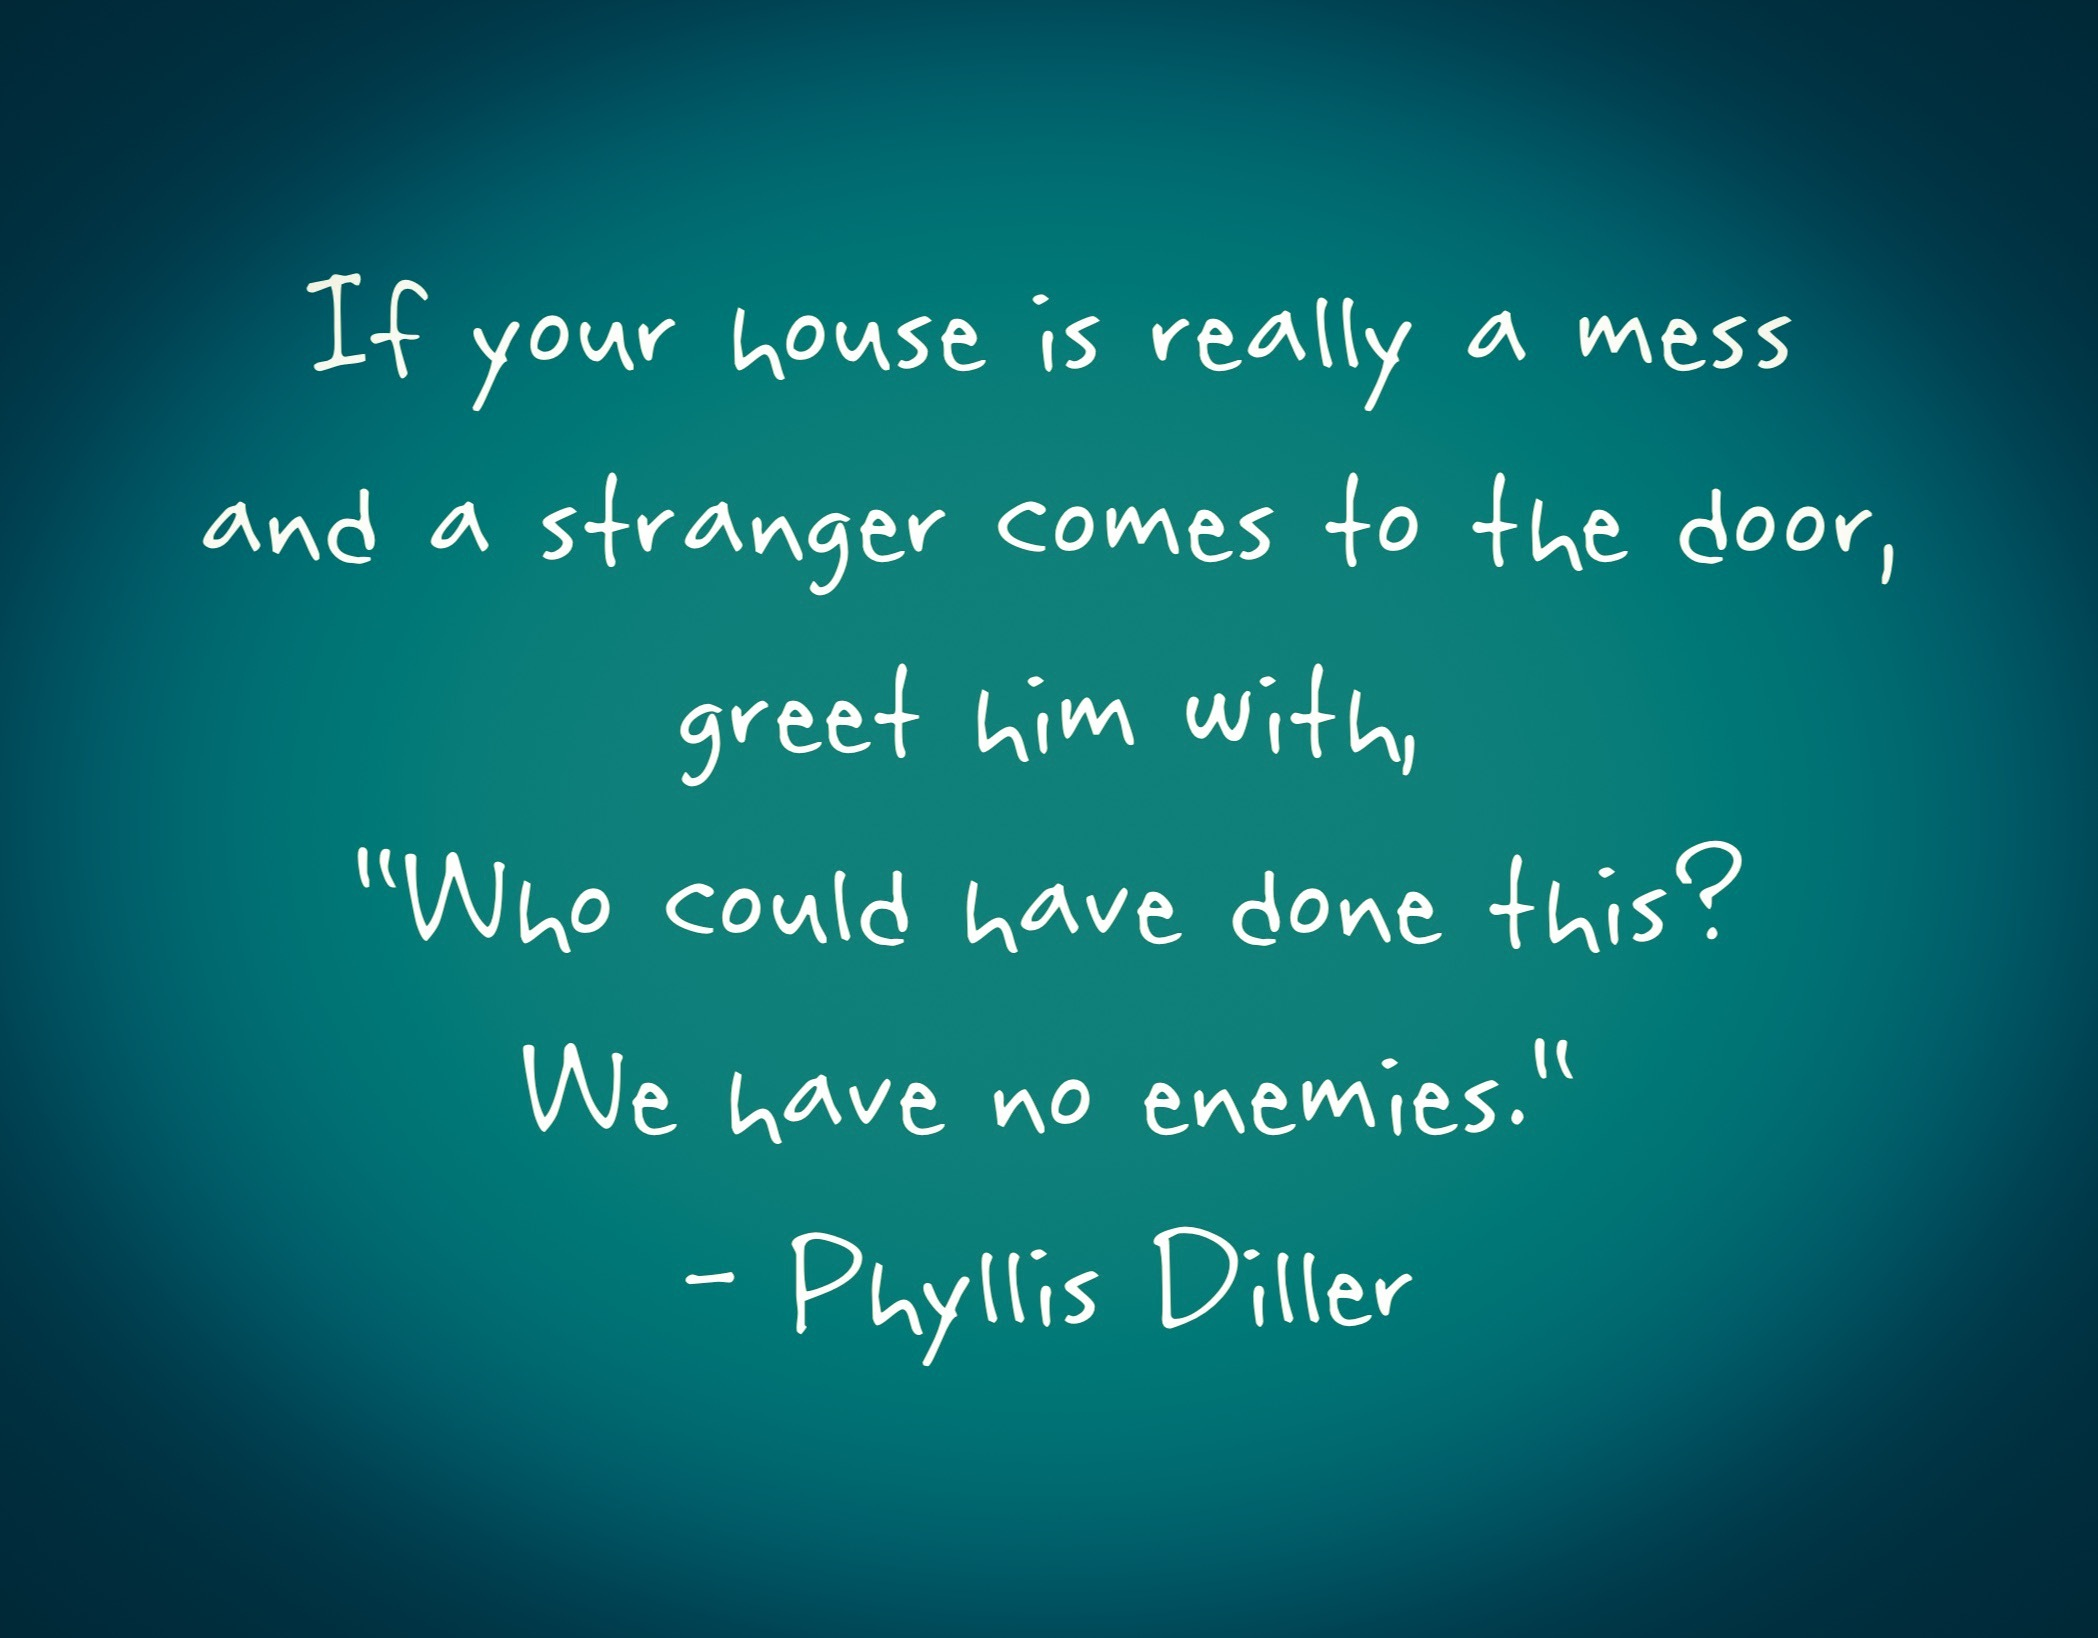 Phyllis Diller quote on housekeeping